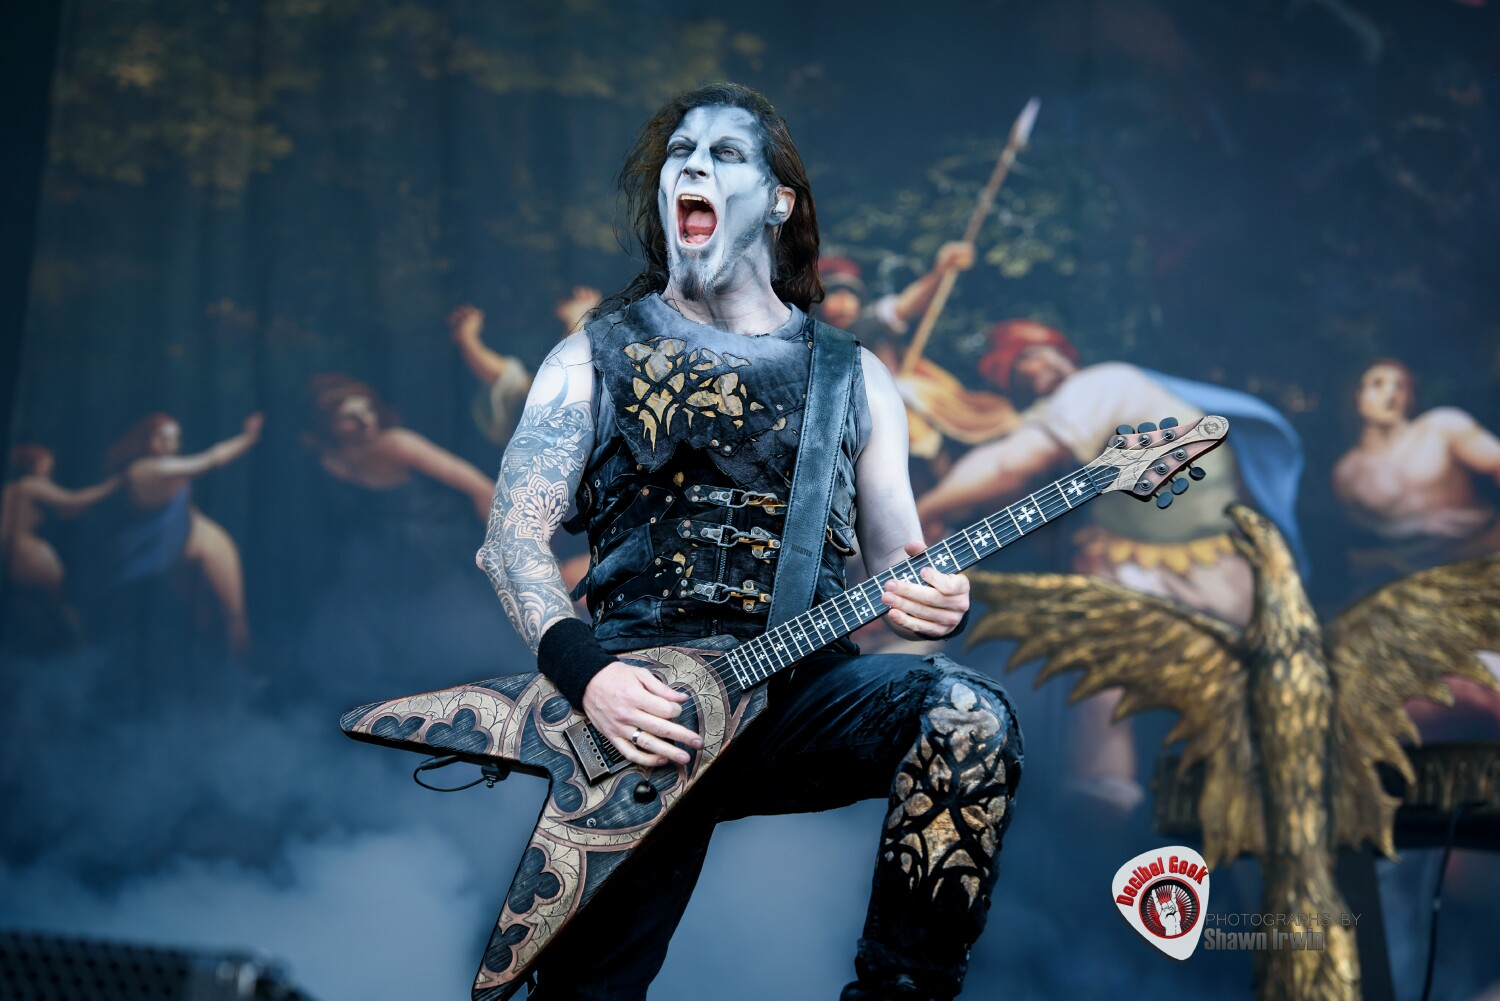 Powerwolf #17-SRF 2019-Shawn Irwin